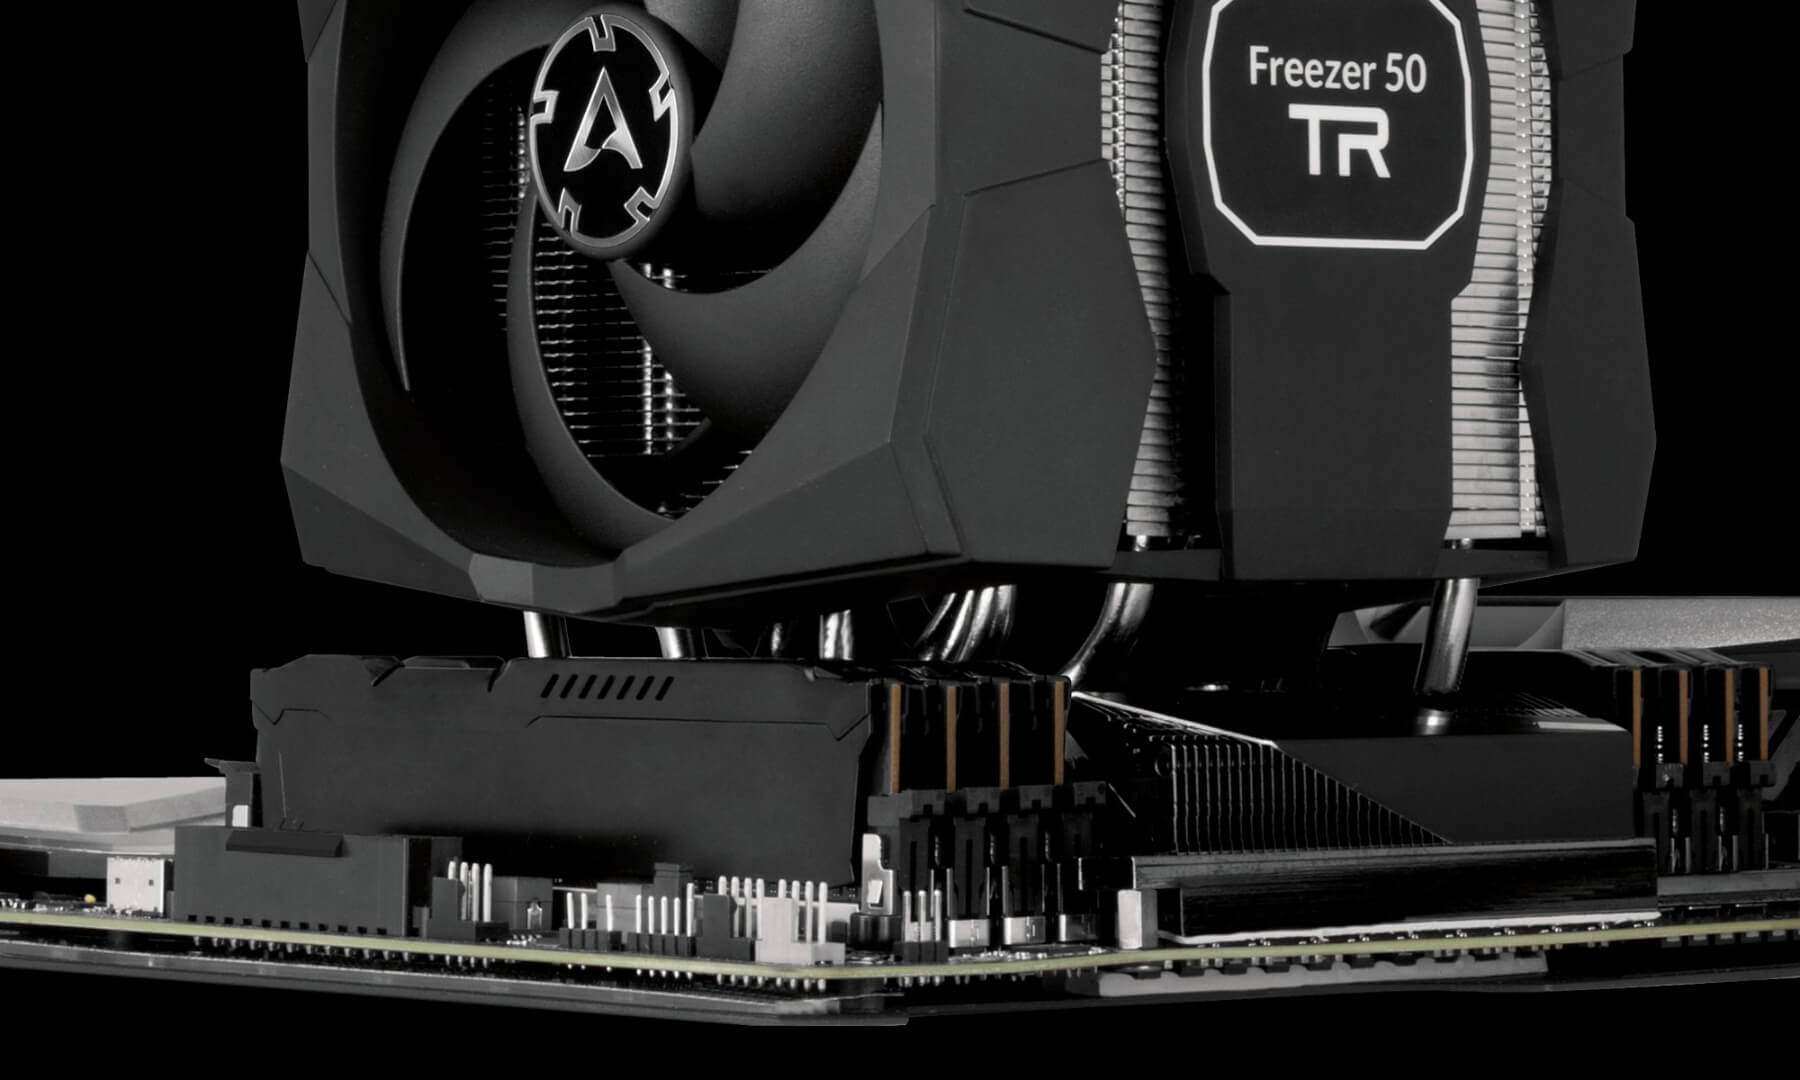 Arctic's Freezer 50 TR is here to cool your Threadripper cores